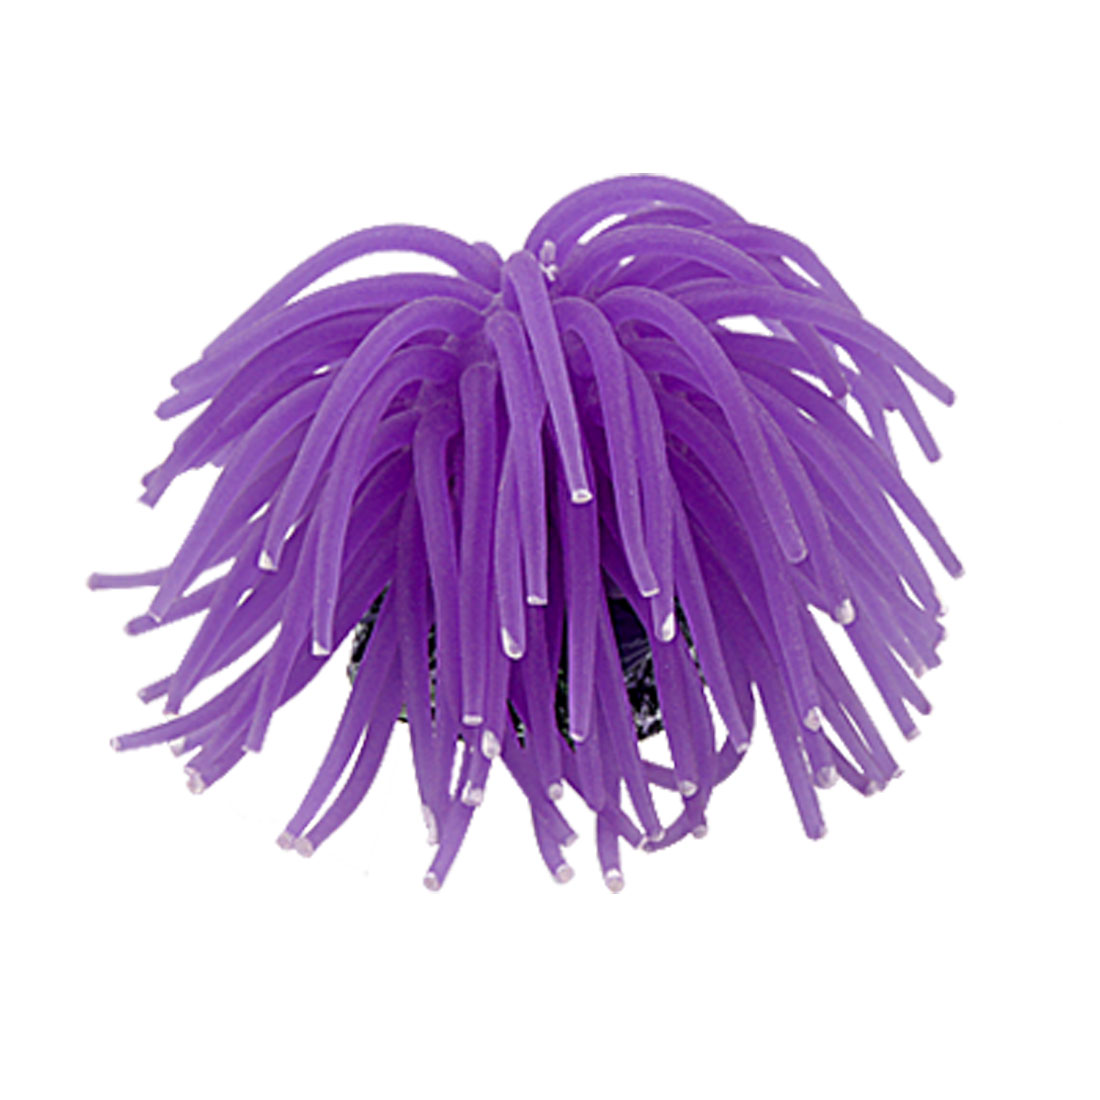 "Aquarium Fish Tank Soft Silicone Coral Ornament Decoration Purple 4"" Diameter"